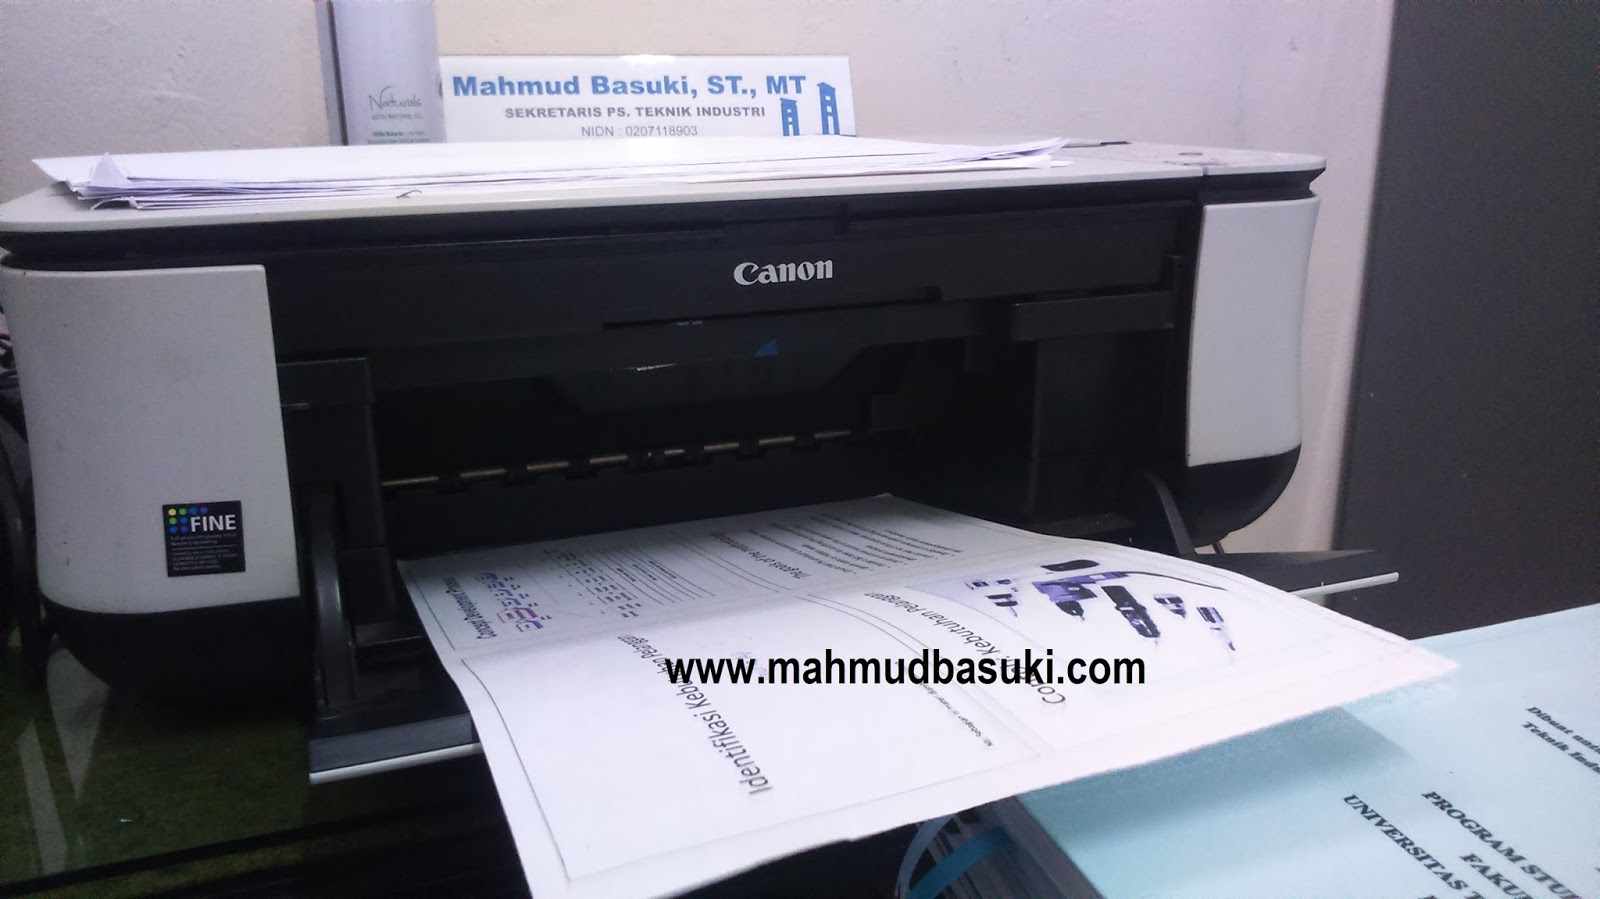 Cara Print Power Point Full Kertas Mahmud Basuki Online